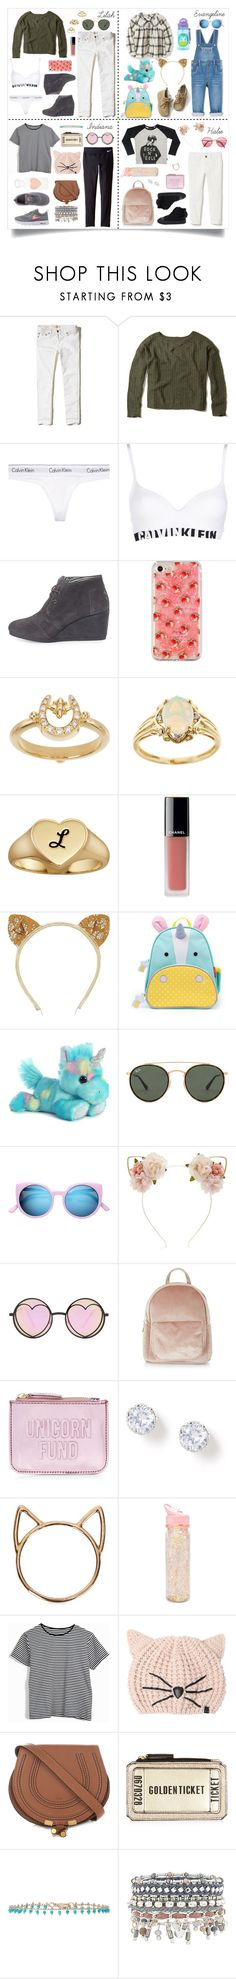 """""""Me and my babies 💓"""" by littlewhitedaisy ❤ liked on Polyvore featuring Hollister Co., Calvin Klein Underwear, TOMS, Temple St. Clair, Anika and August, Chanel, Old Navy, Ray-Ban, Forever 21 and Betsey Johnson"""